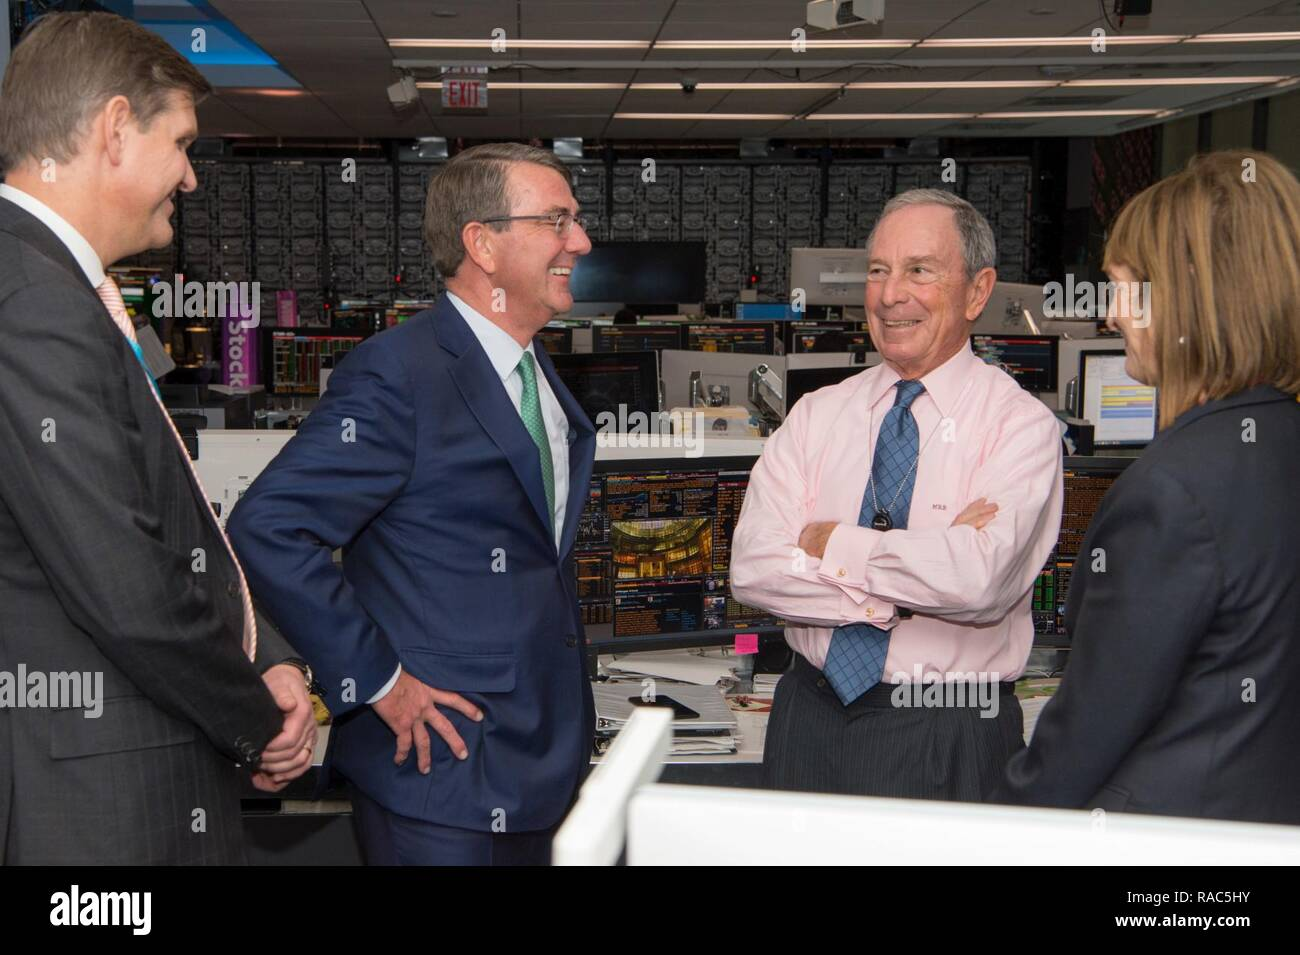 Secretary of Defense Ash Carter speaks with Mike Bloomberg, the founder and CEO of Bloomberg L.P., at the Bloomberg Television headquarters building in New York City on Jan. 12, 2017. - Stock Image